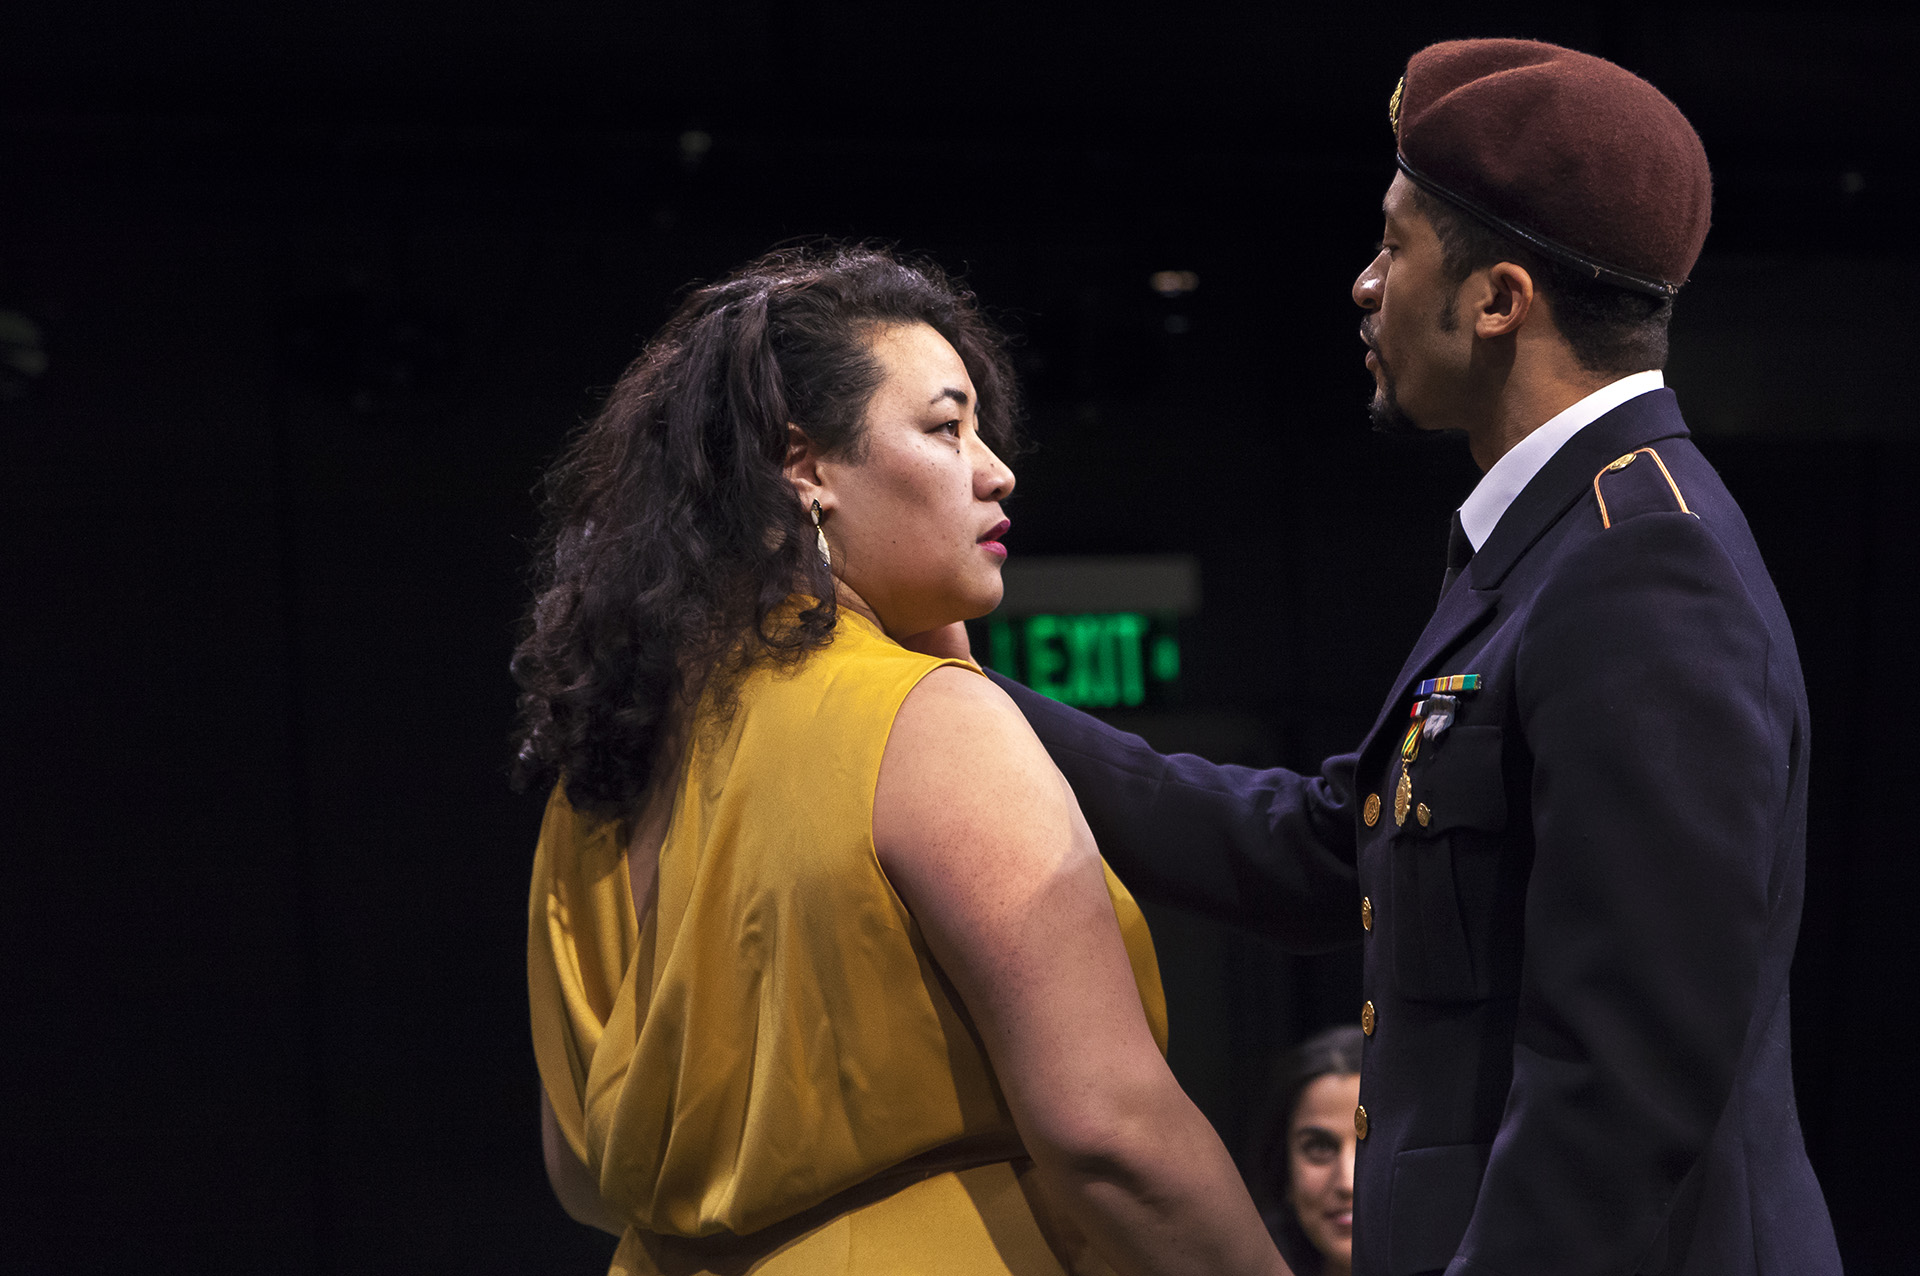 Patricia Fa'asua ('18) and Sean Boyce Johnson ('18) in MUCH ADO ABOUT NOTHING by William Shakespeare, directed by Jecamiah M. Ybañez ('19), Yale School of Drama, 2018. Photo by Brittany Bland ('19).